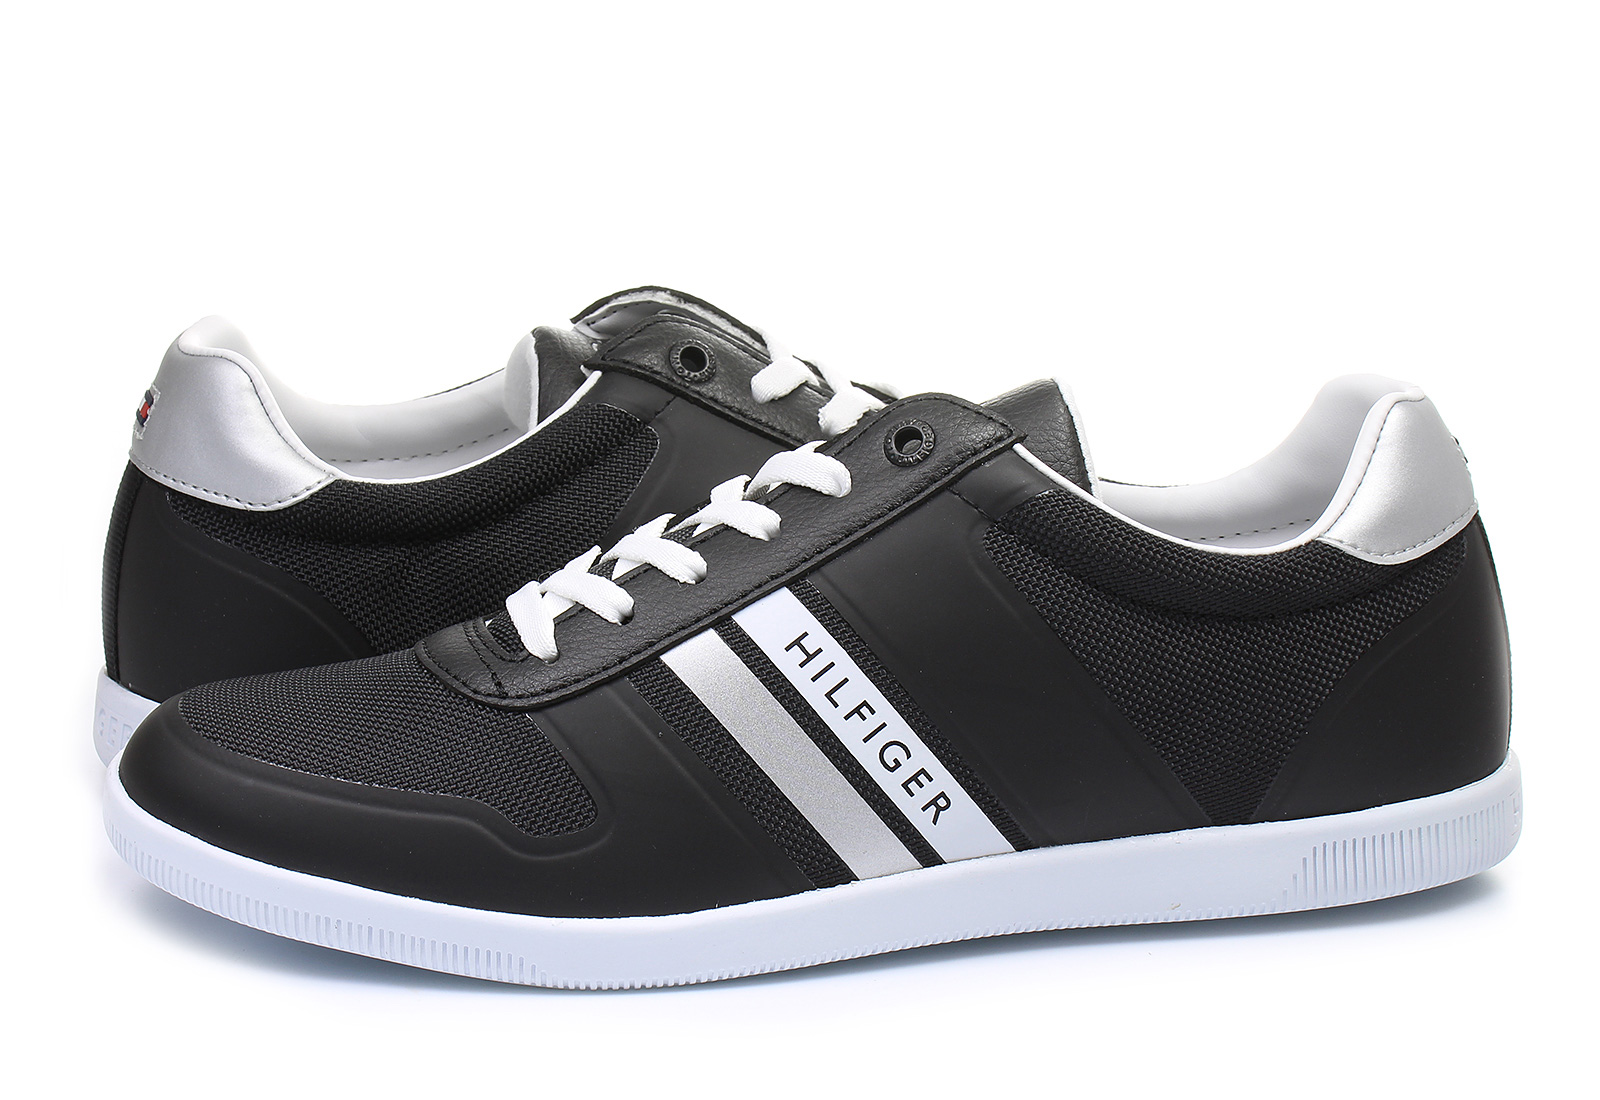 tommy hilfiger shoes denzel 9d 16f 1664 990 online shop for sneakers shoes and boots. Black Bedroom Furniture Sets. Home Design Ideas